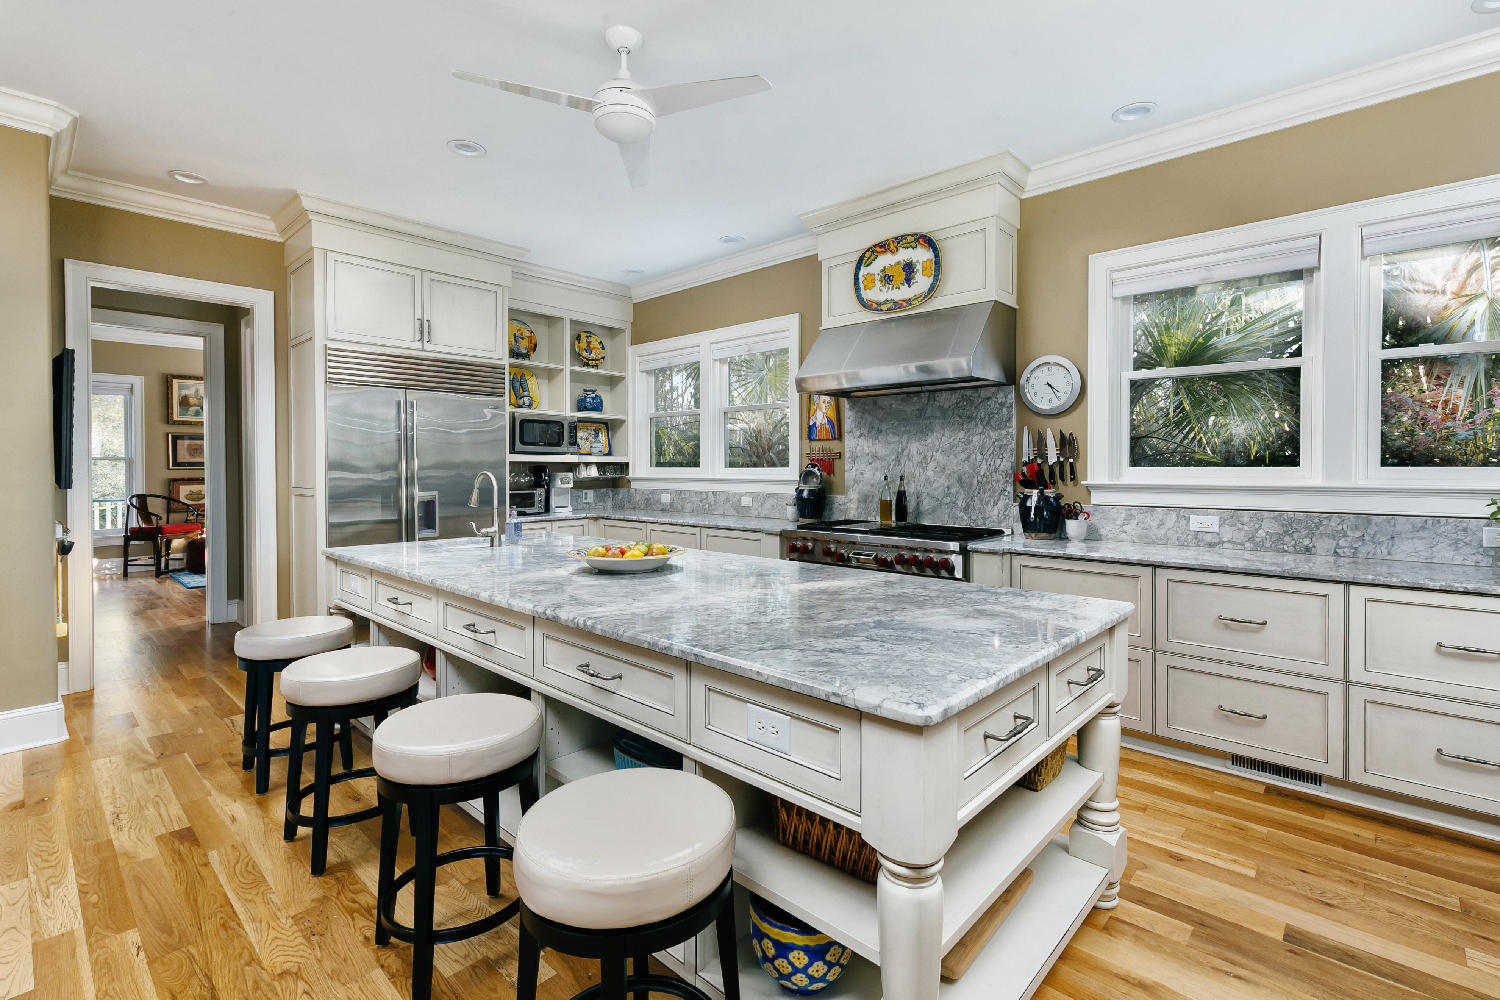 Rivertowne On The Wando Homes For Sale - 2212 Hartfords Bluff, Mount Pleasant, SC - 19